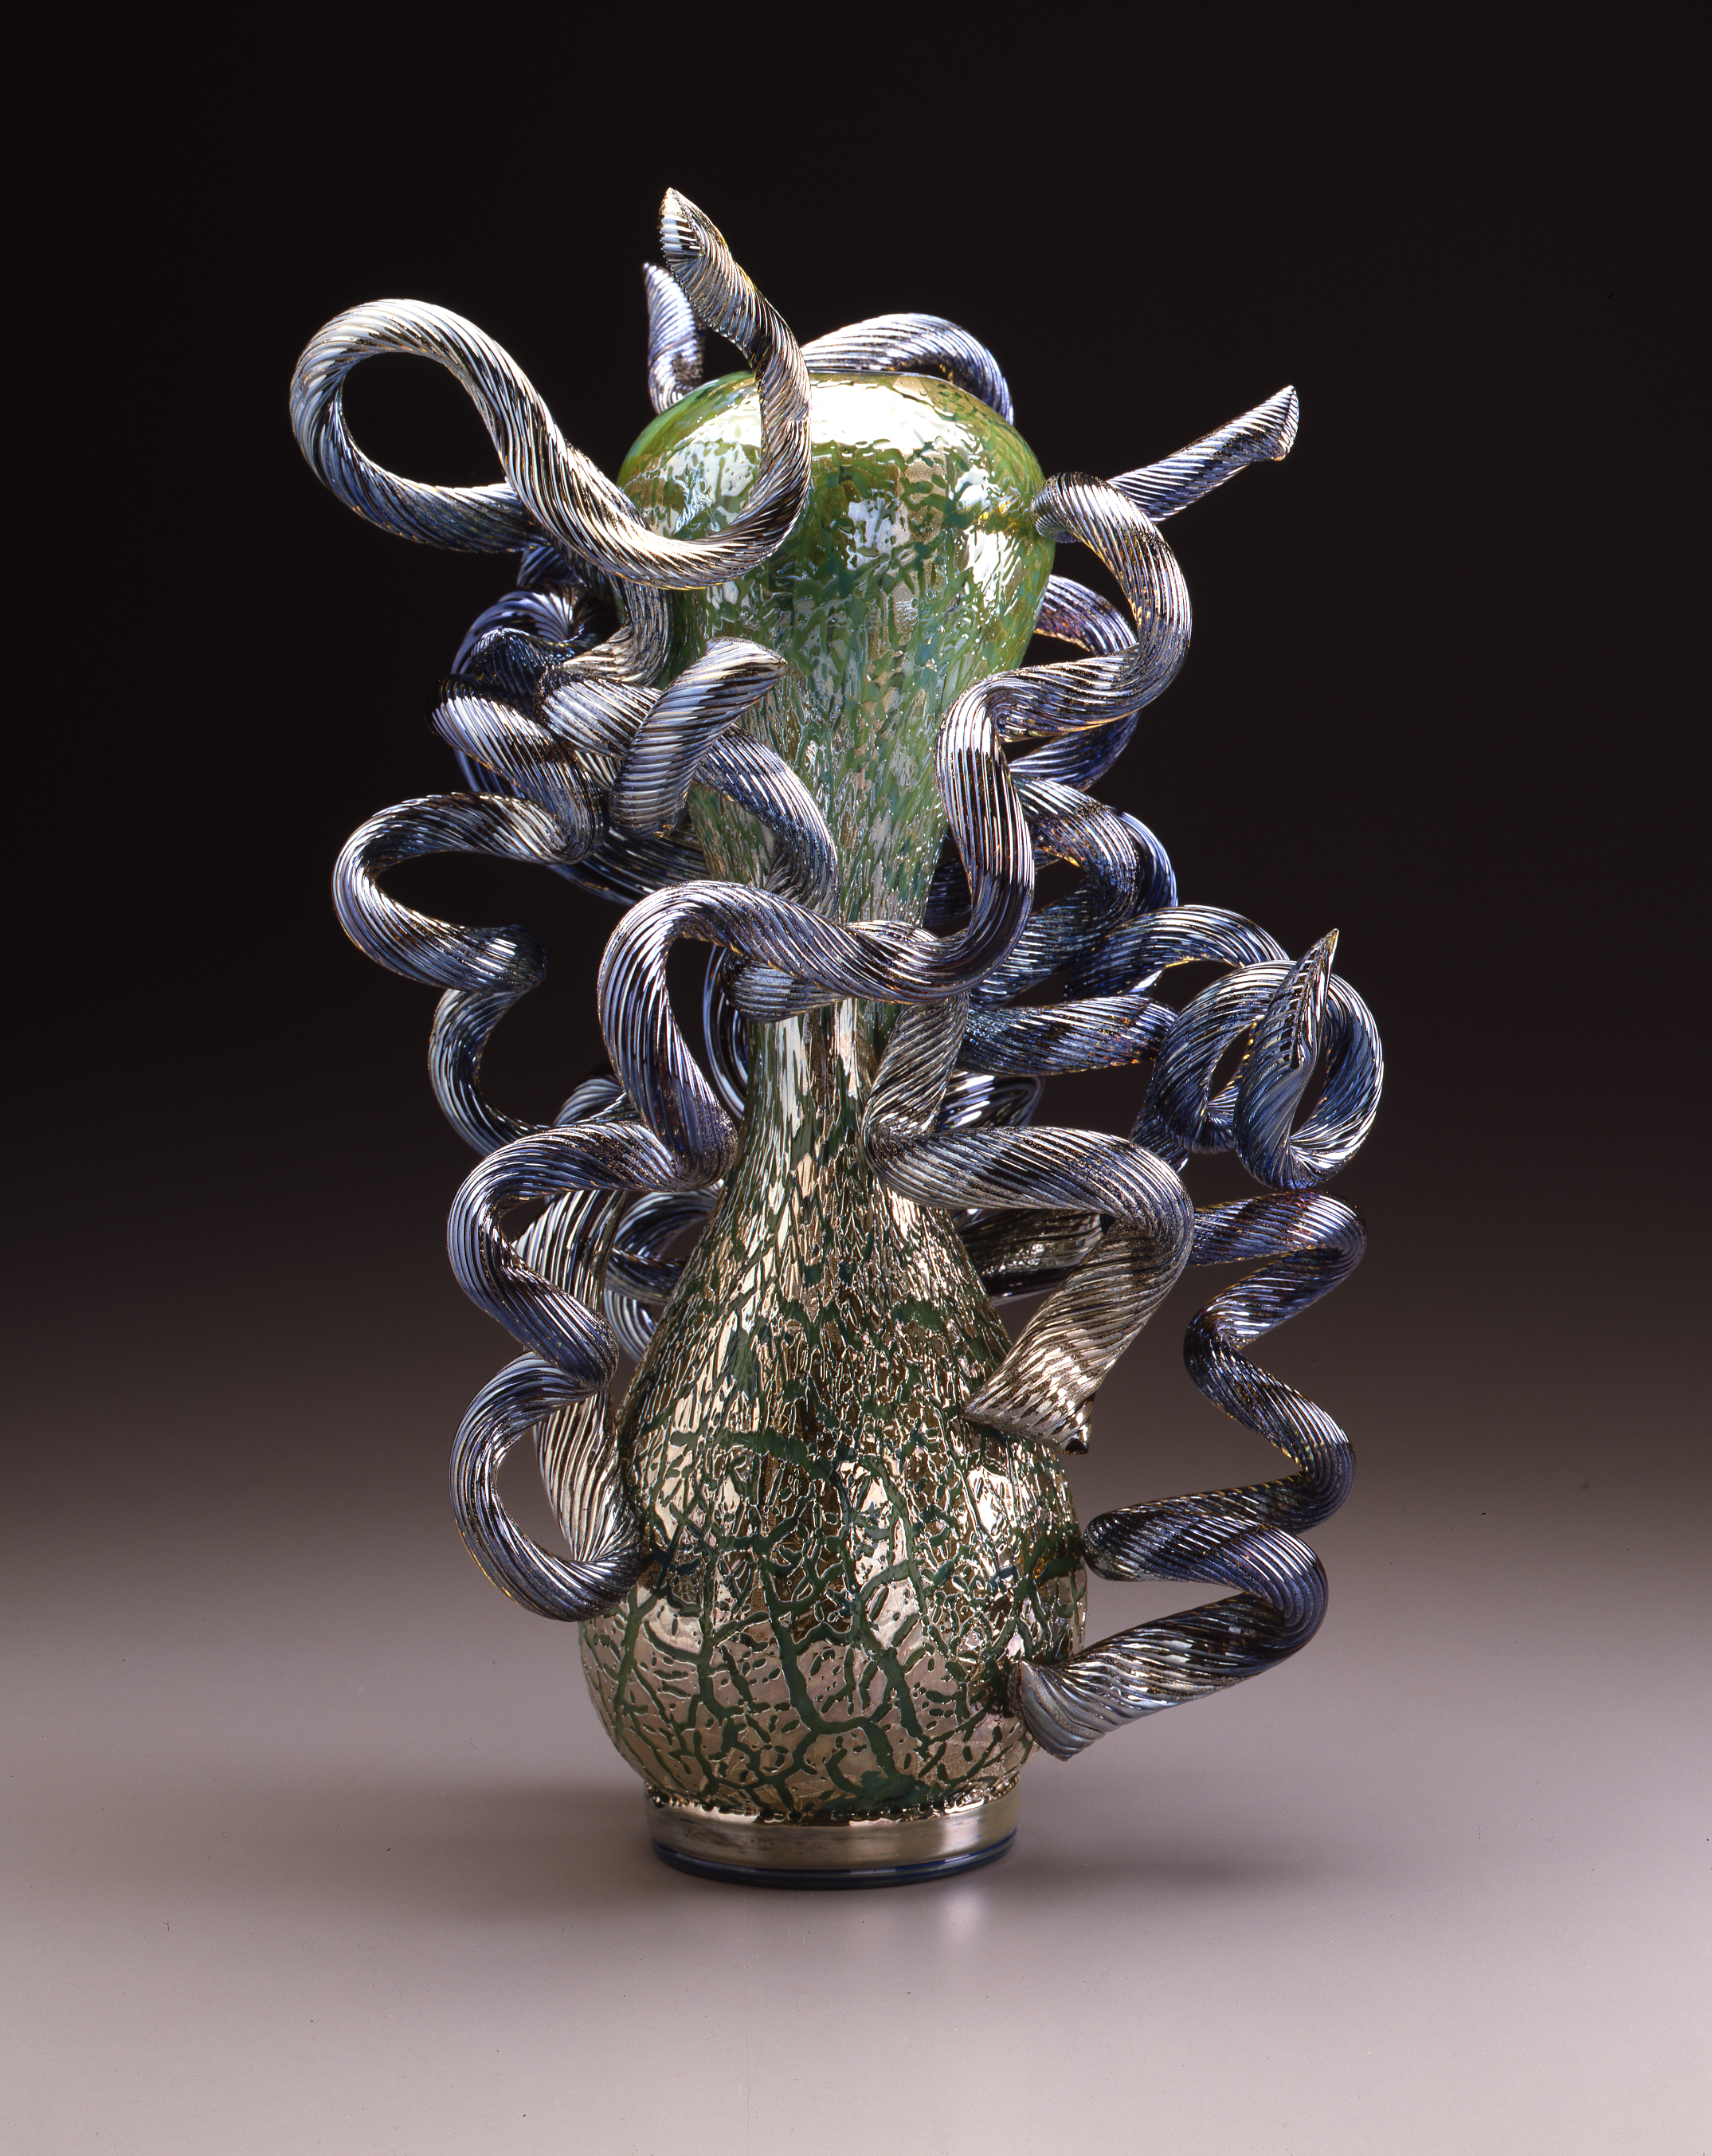 Dale Chihuly,  Olive Green Venetian with Blue Coils  (1989, glass, 22 x 13 x 11 inches)